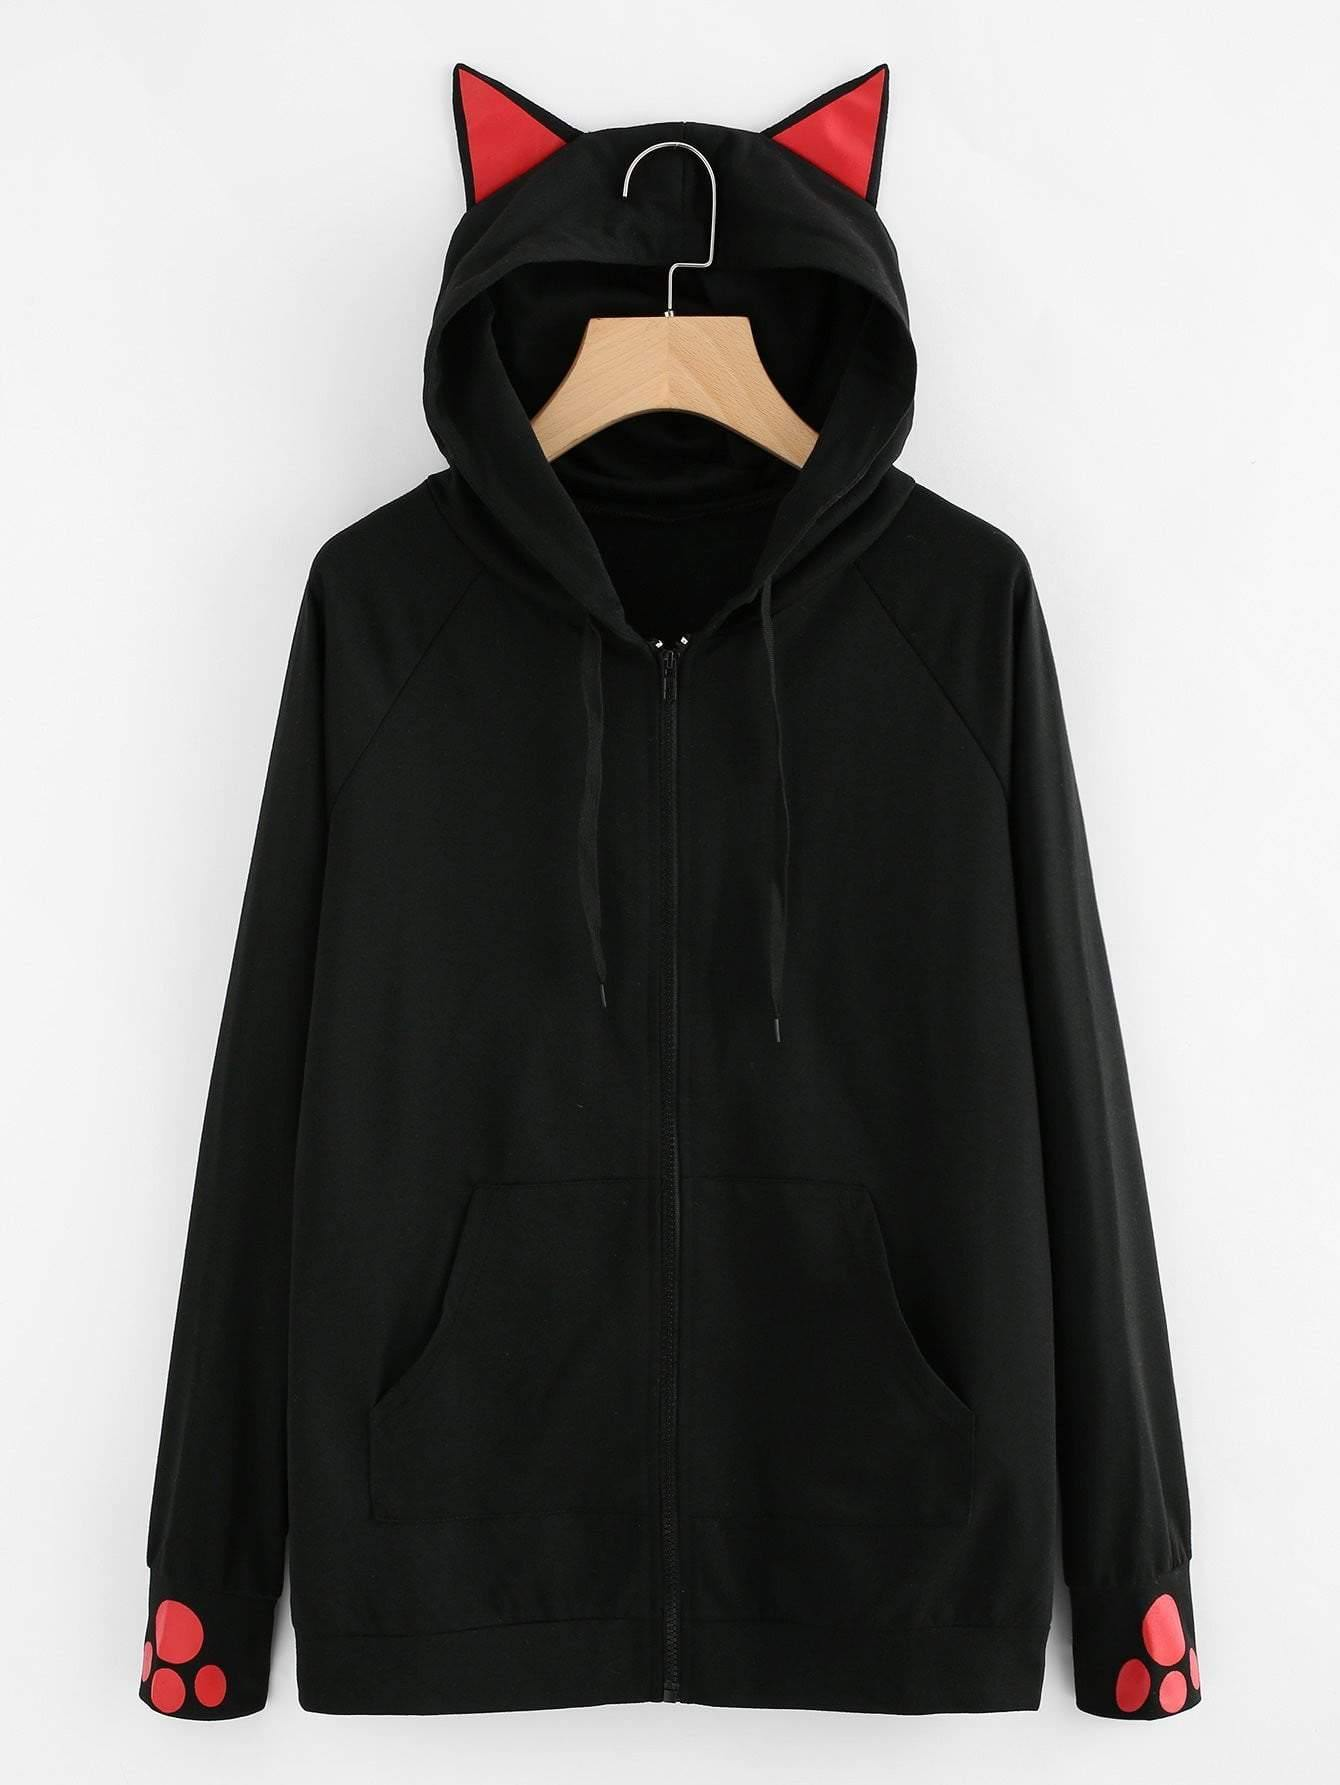 Cat-Ear Hooded Sweatshirt Jacket - zooomberg